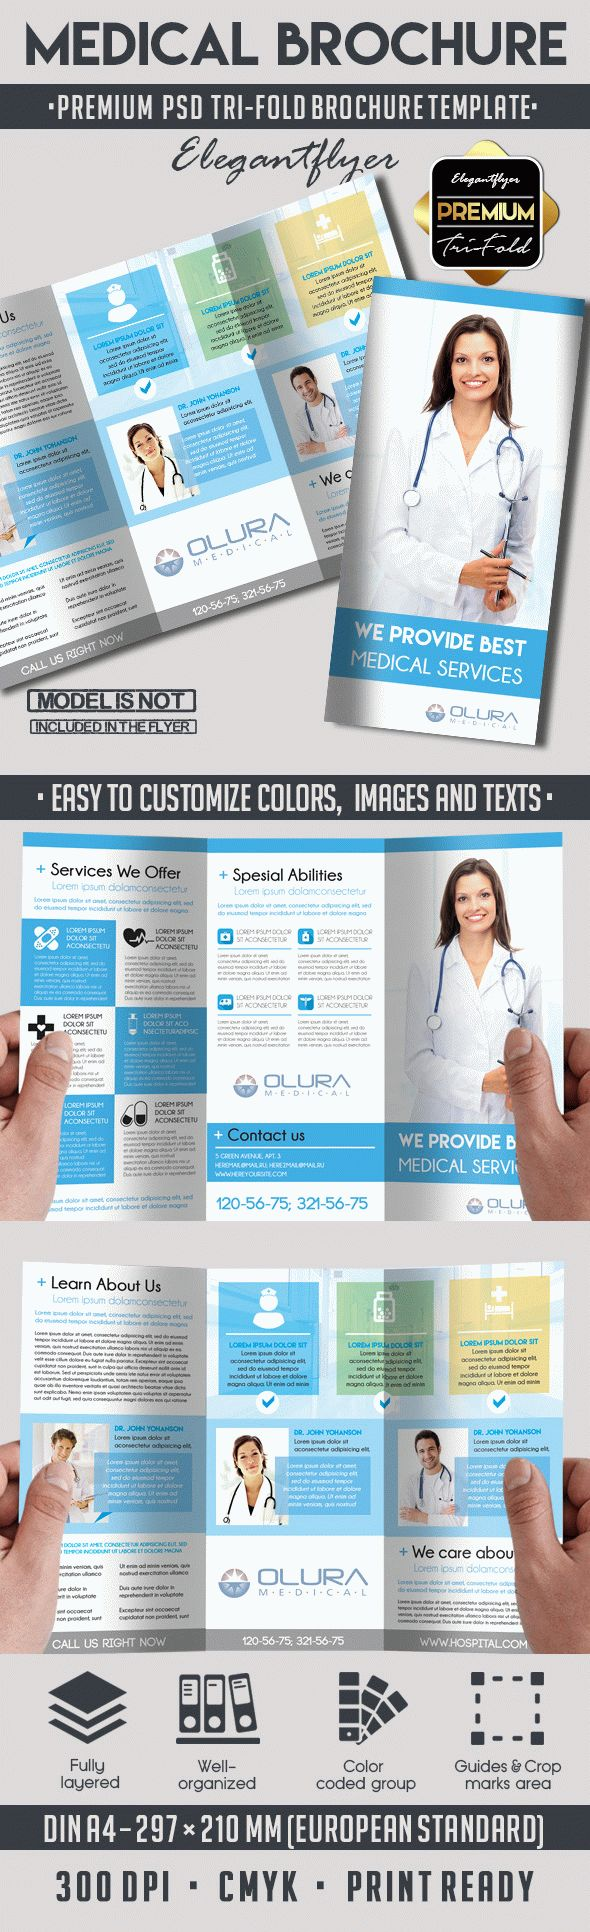 Medical U2013 Premium Tri Fold PSD Brochure Template  Medical Brochures Templates